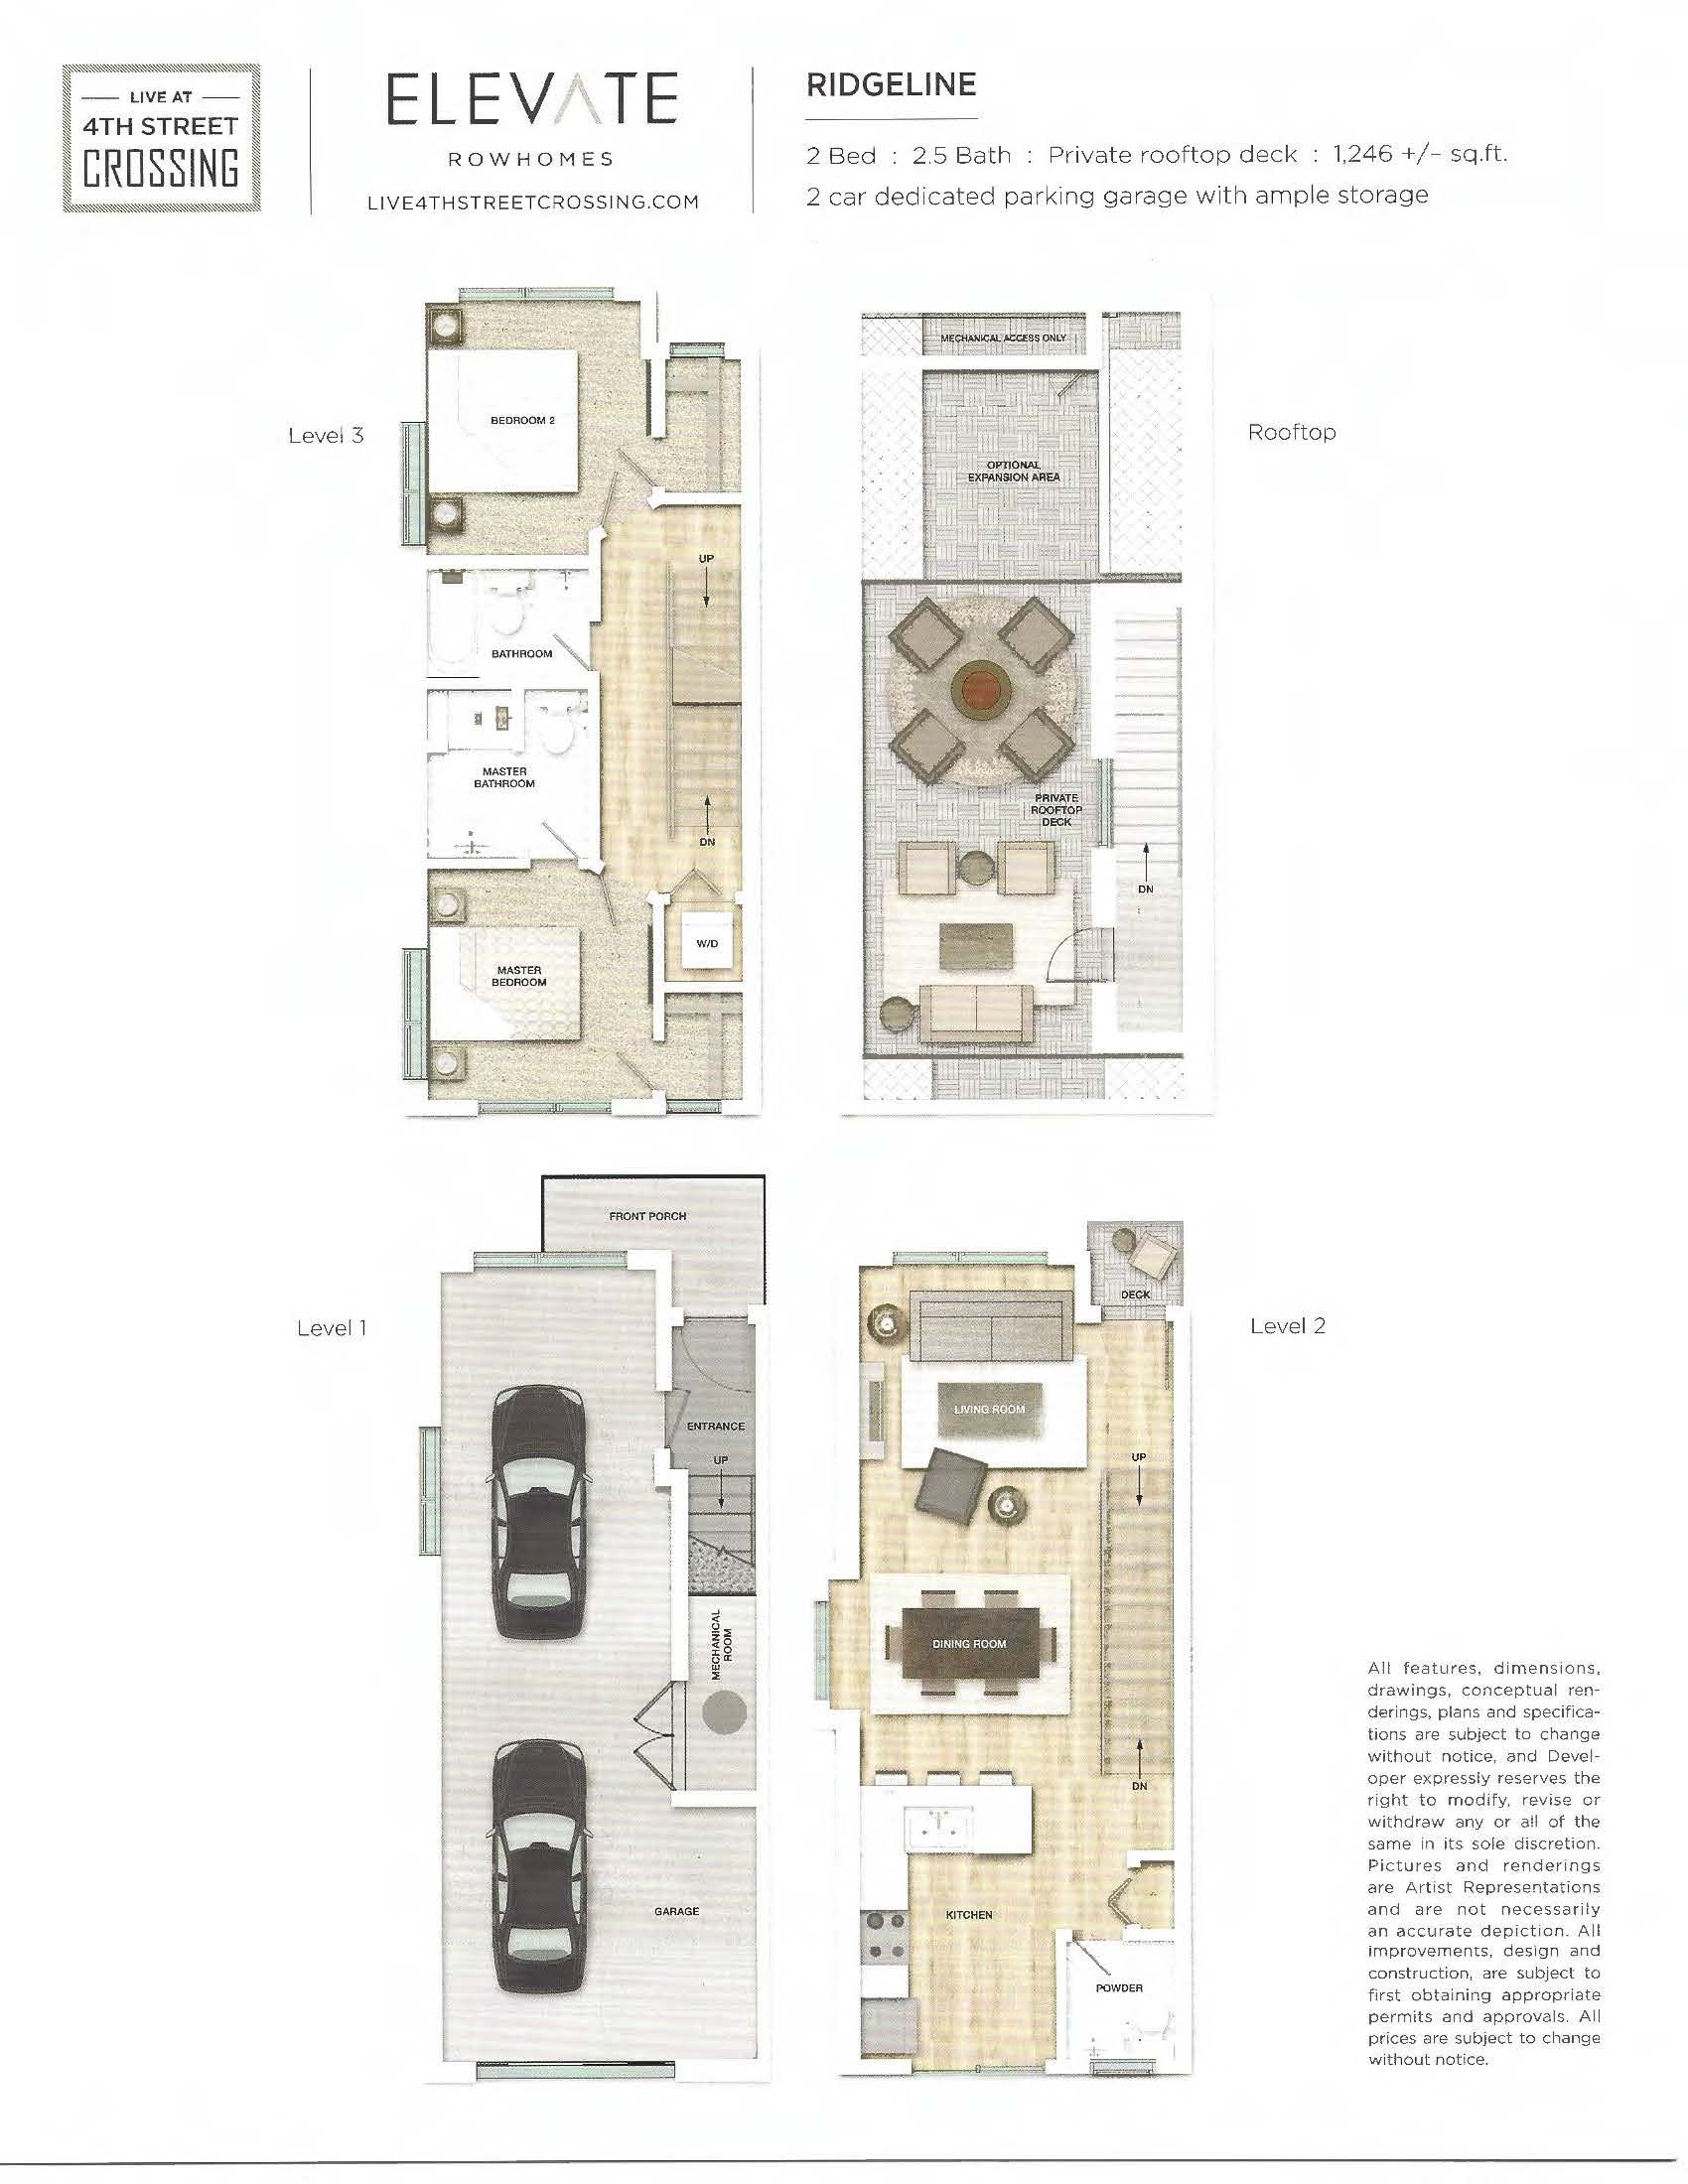 Fourth Street Crossing - Elevate Rowhomes - Ridgeline Floorplan